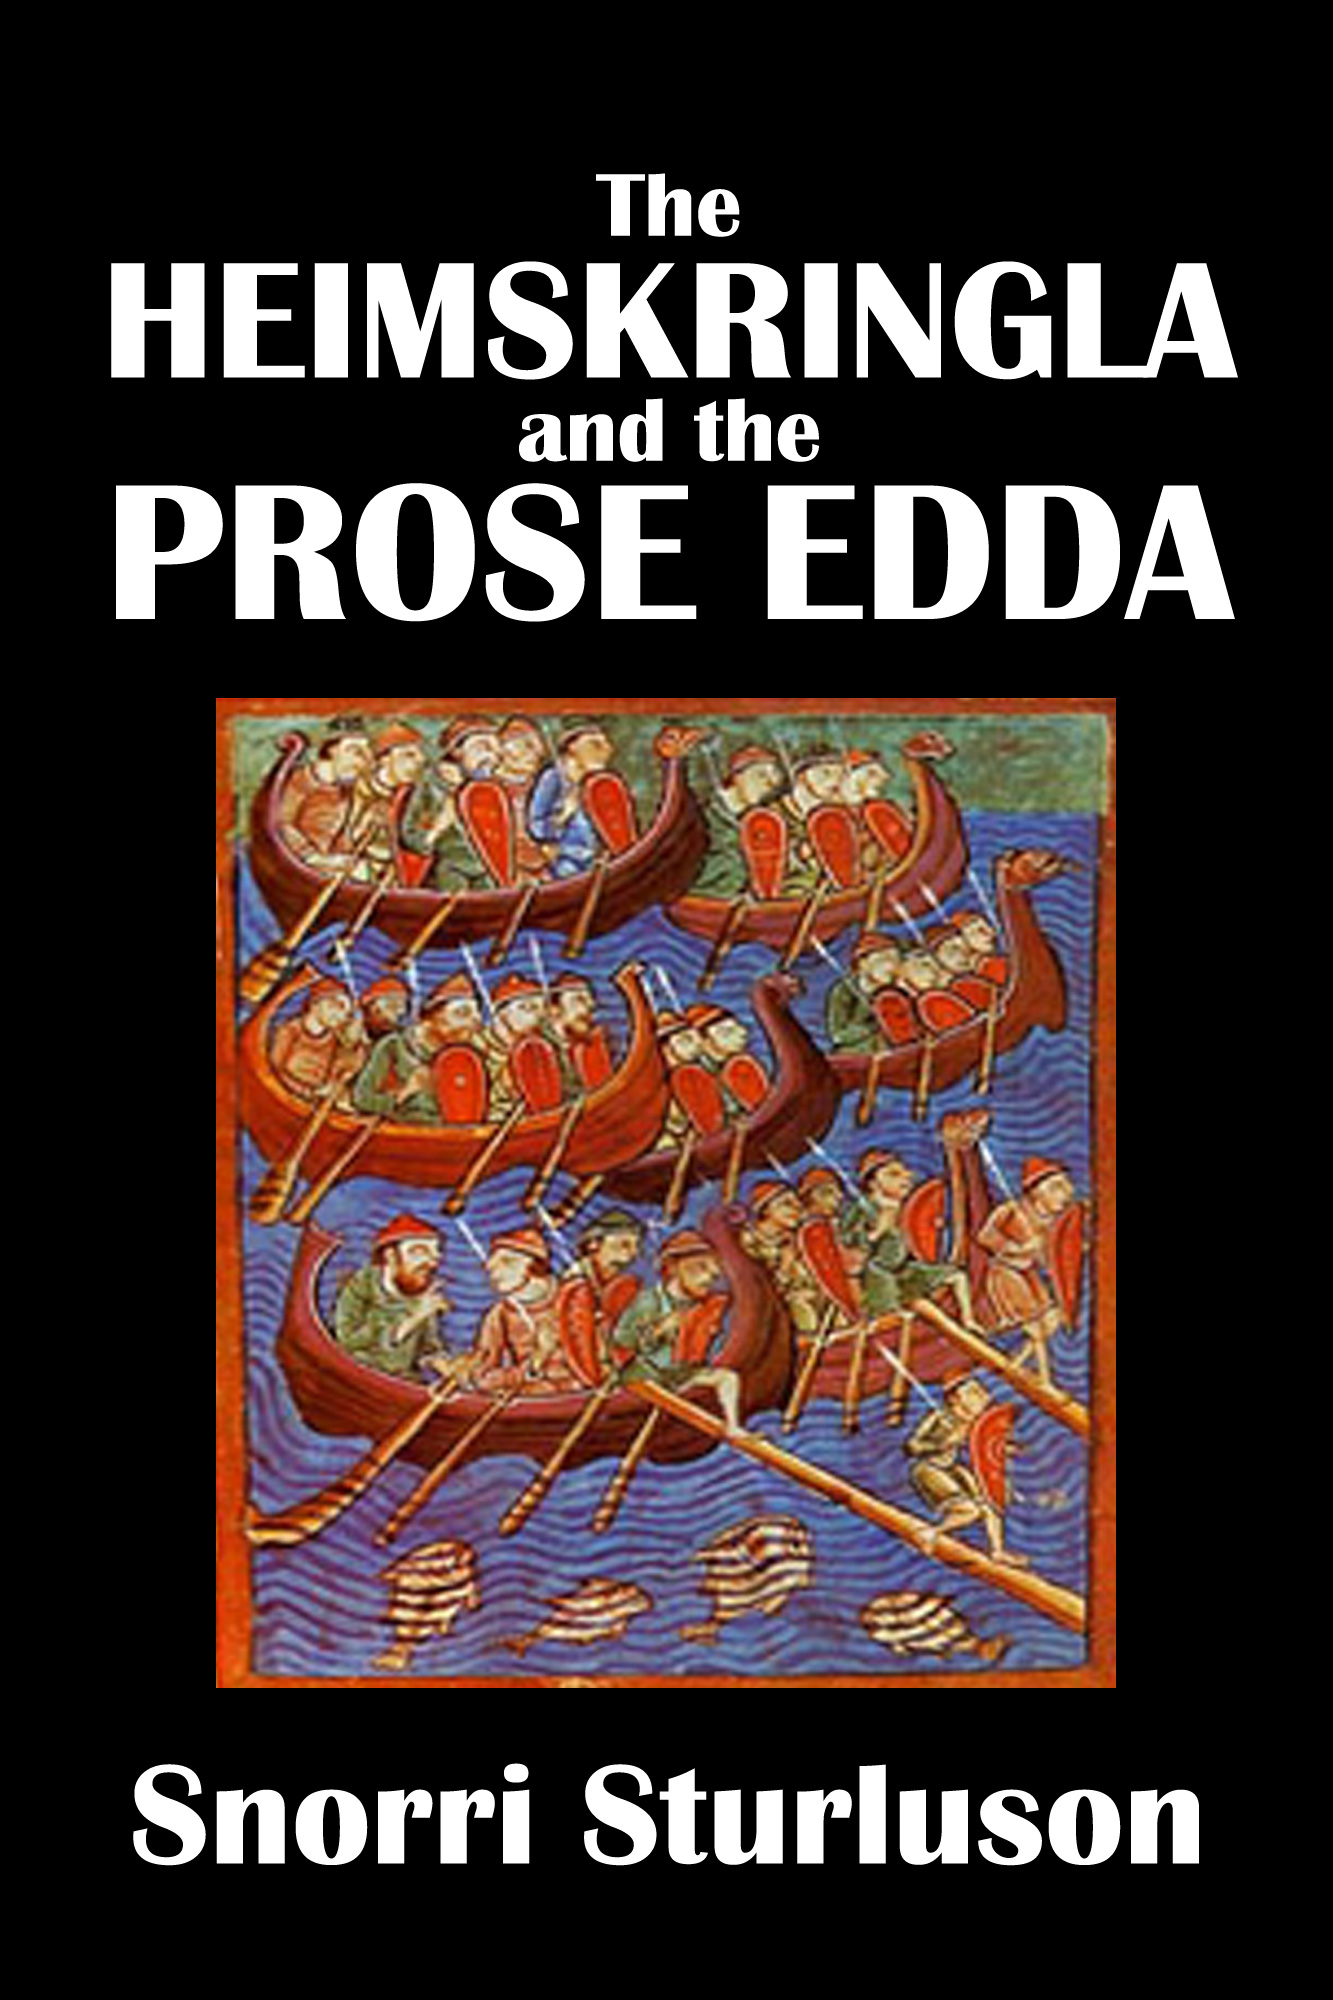 The Heimskringla and the Prose Edda of Snorri Sturluson